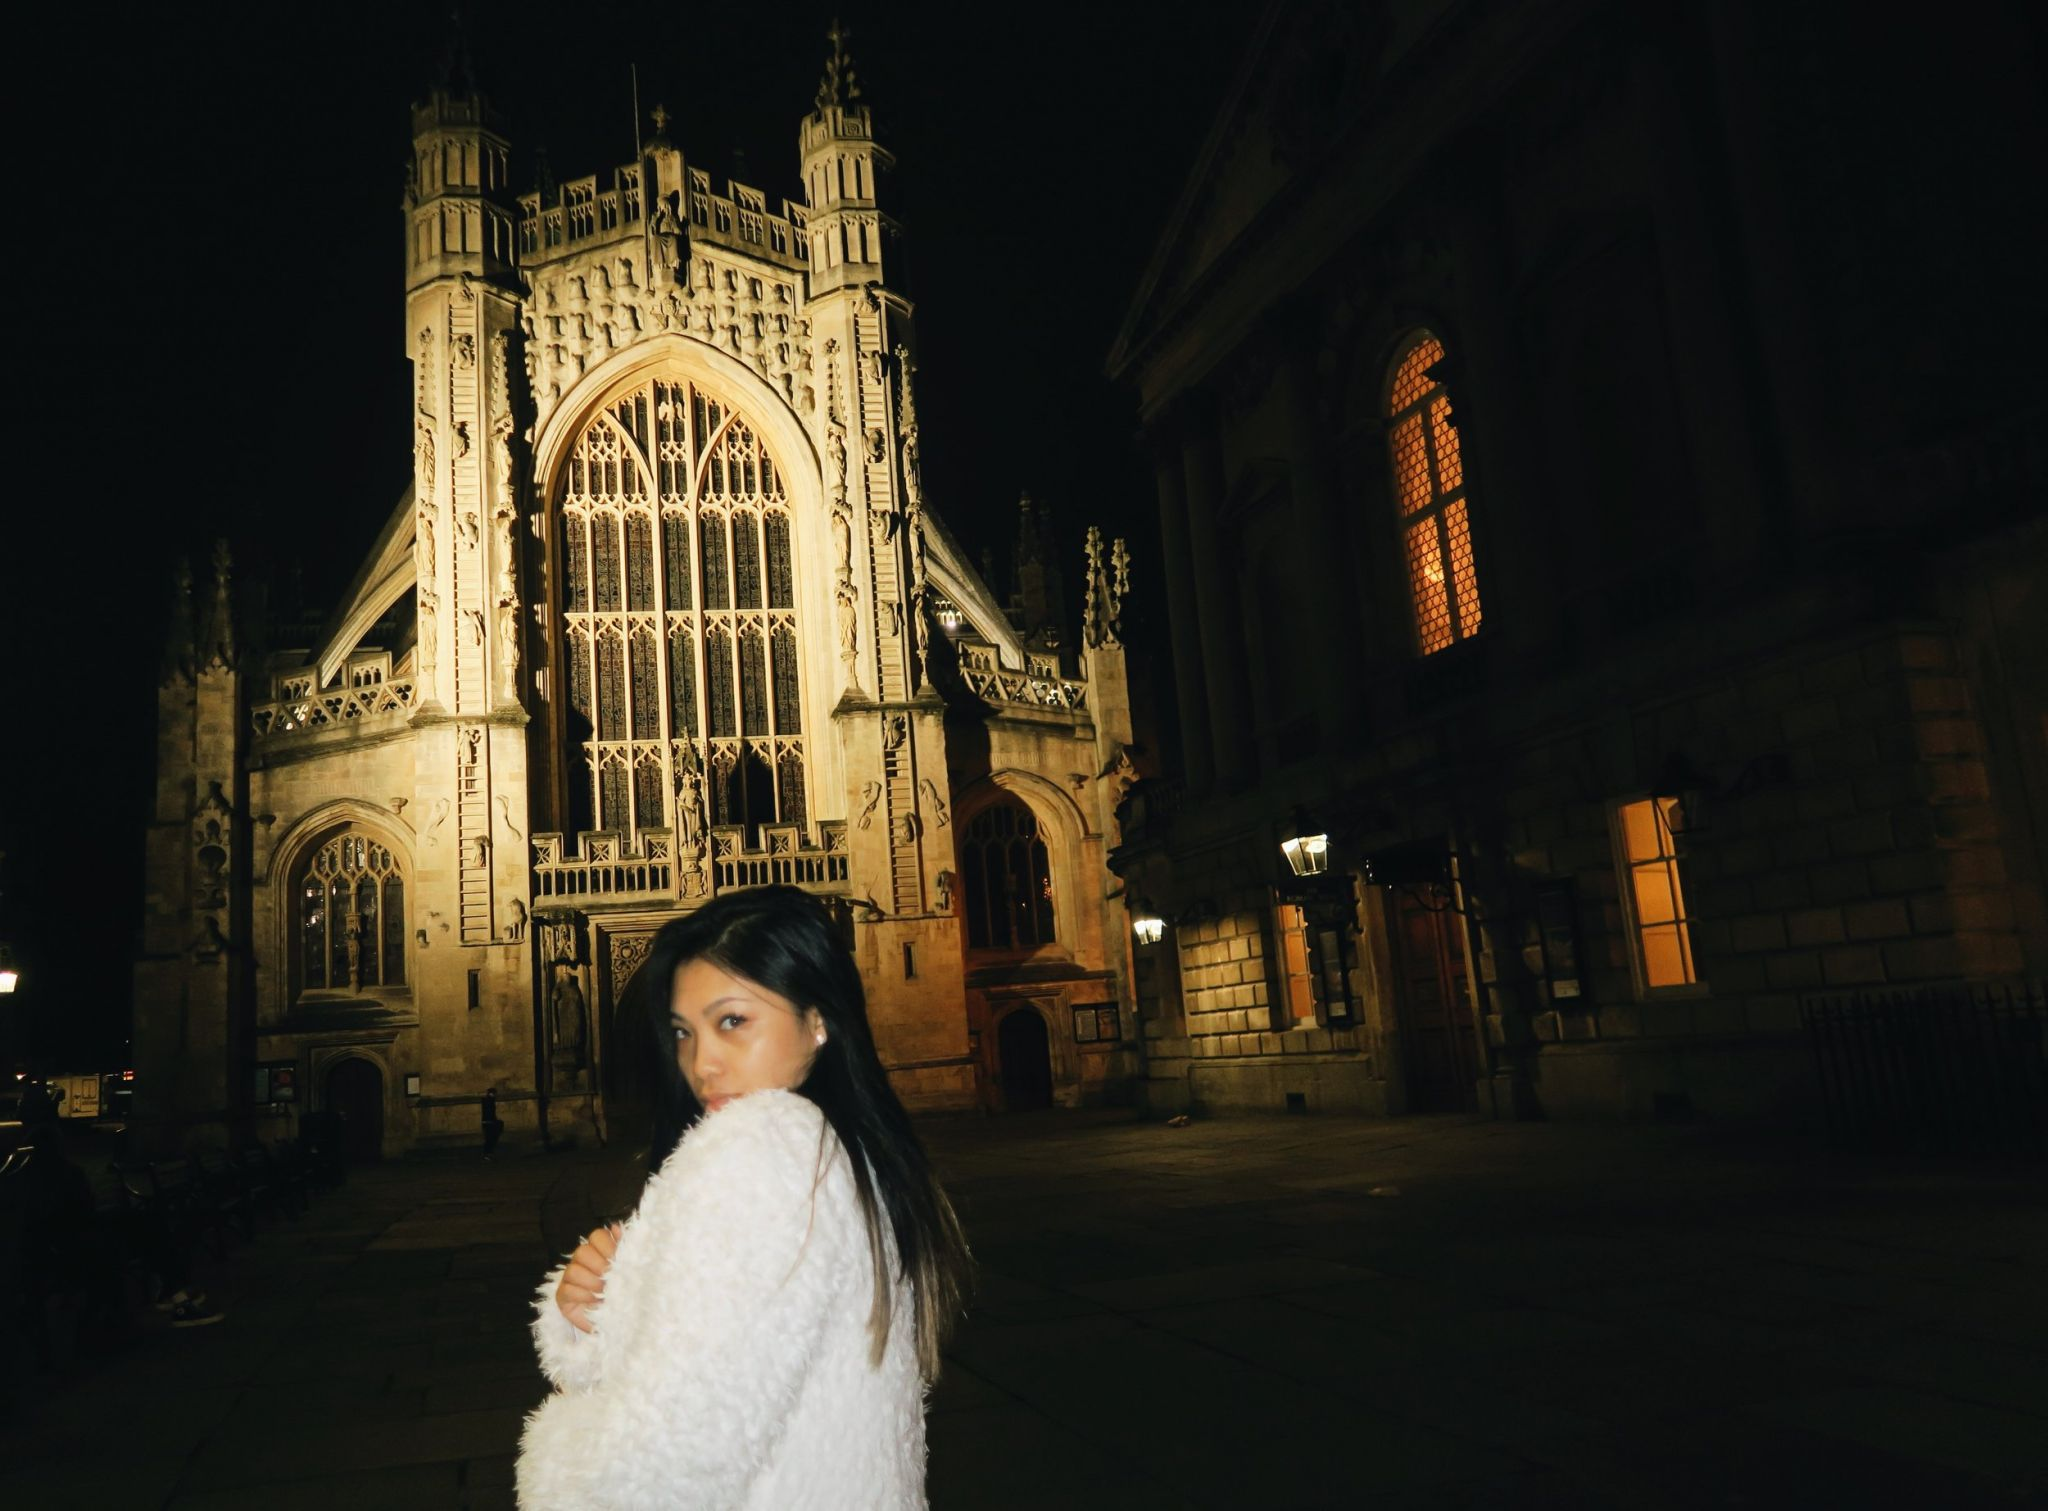 The  Bath Abbey was my go to spot since it was walking distance from the place where I stayed. Right next to it is the Roman Baths,  best preserved Roman remains in the world which was constructed around 70 AD as bathing site of Roman emperors.